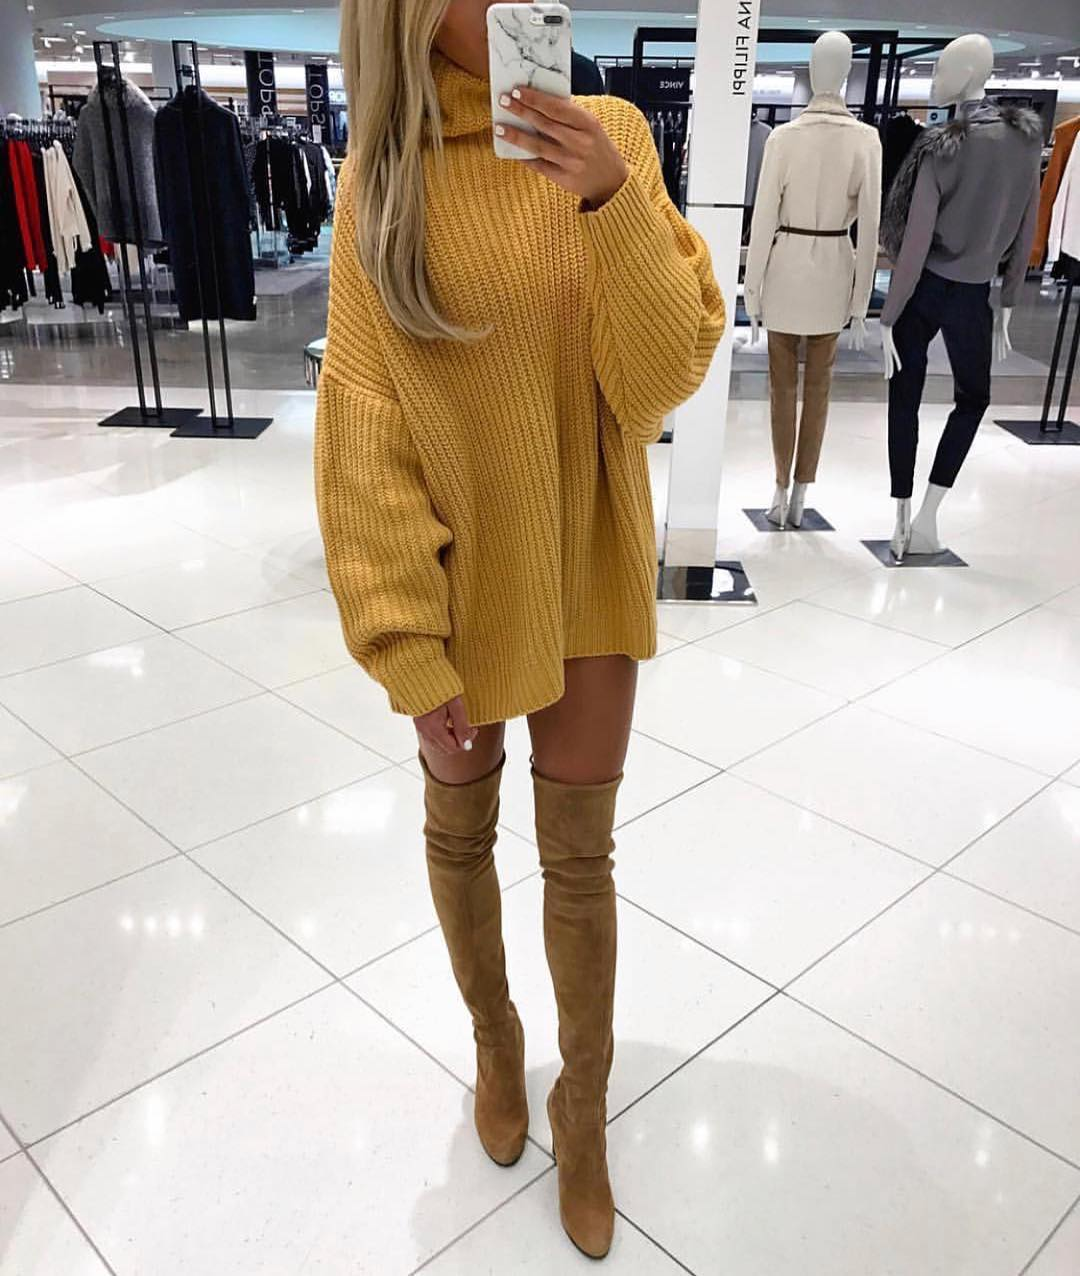 High Neck Mustard-Yellow Sweater Dress In Oversized Fit And Suede OTK Boots 2019